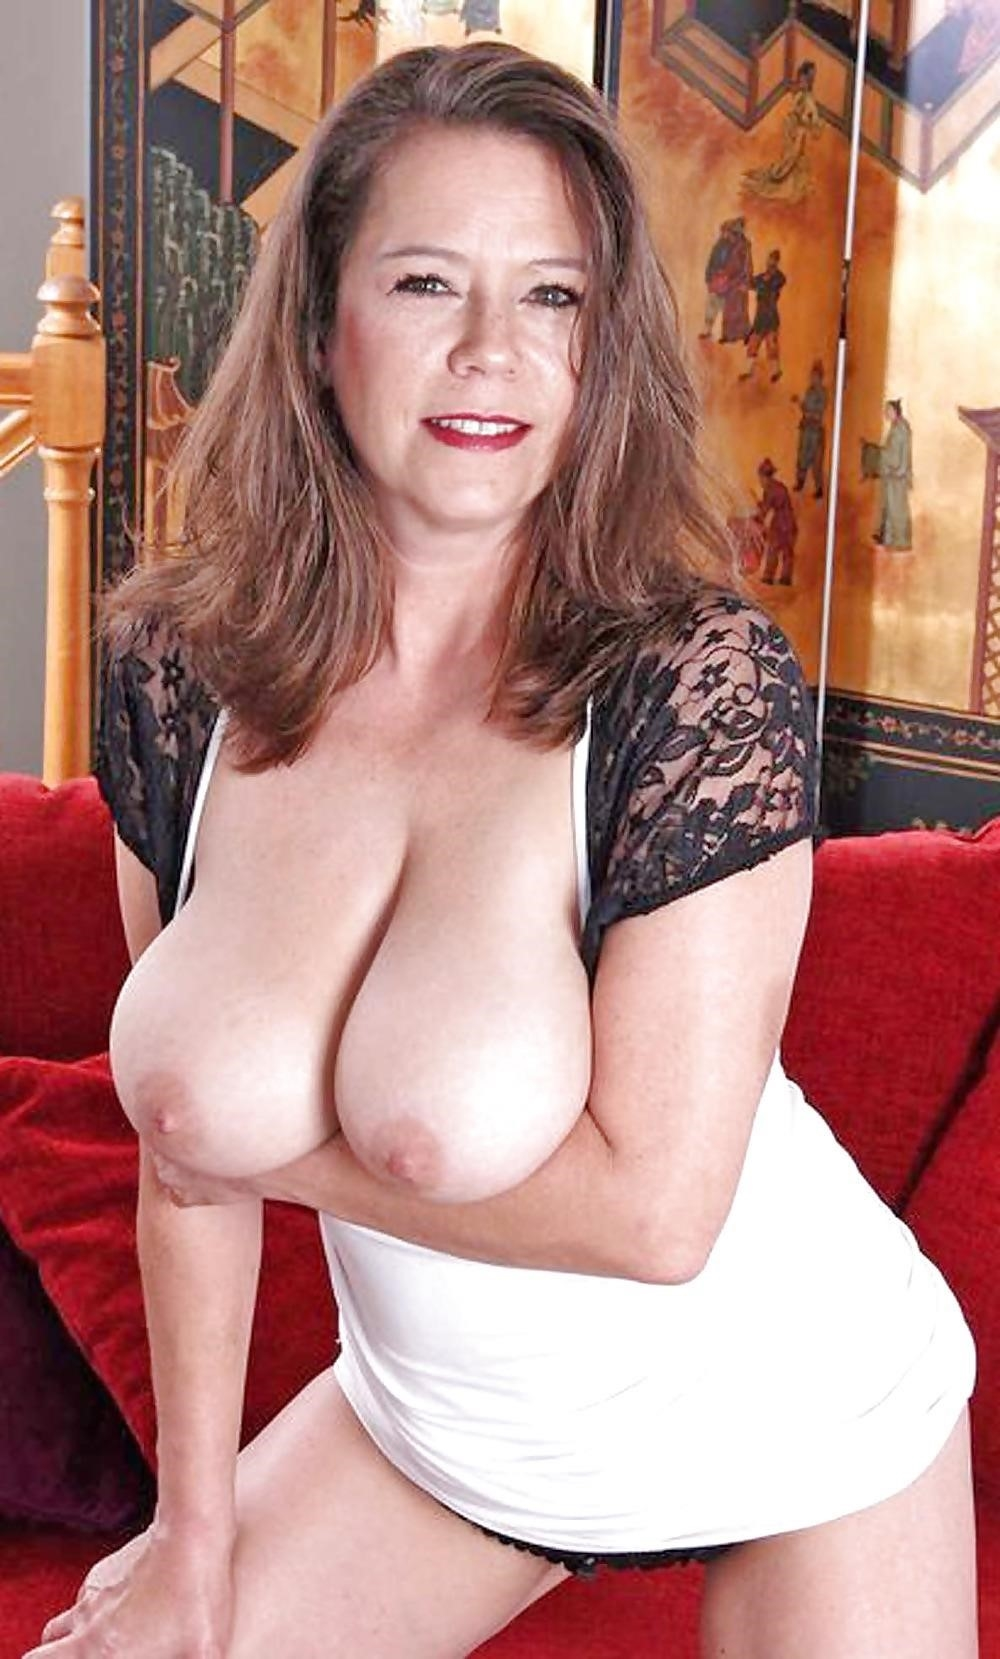 Real mature nudes-9604